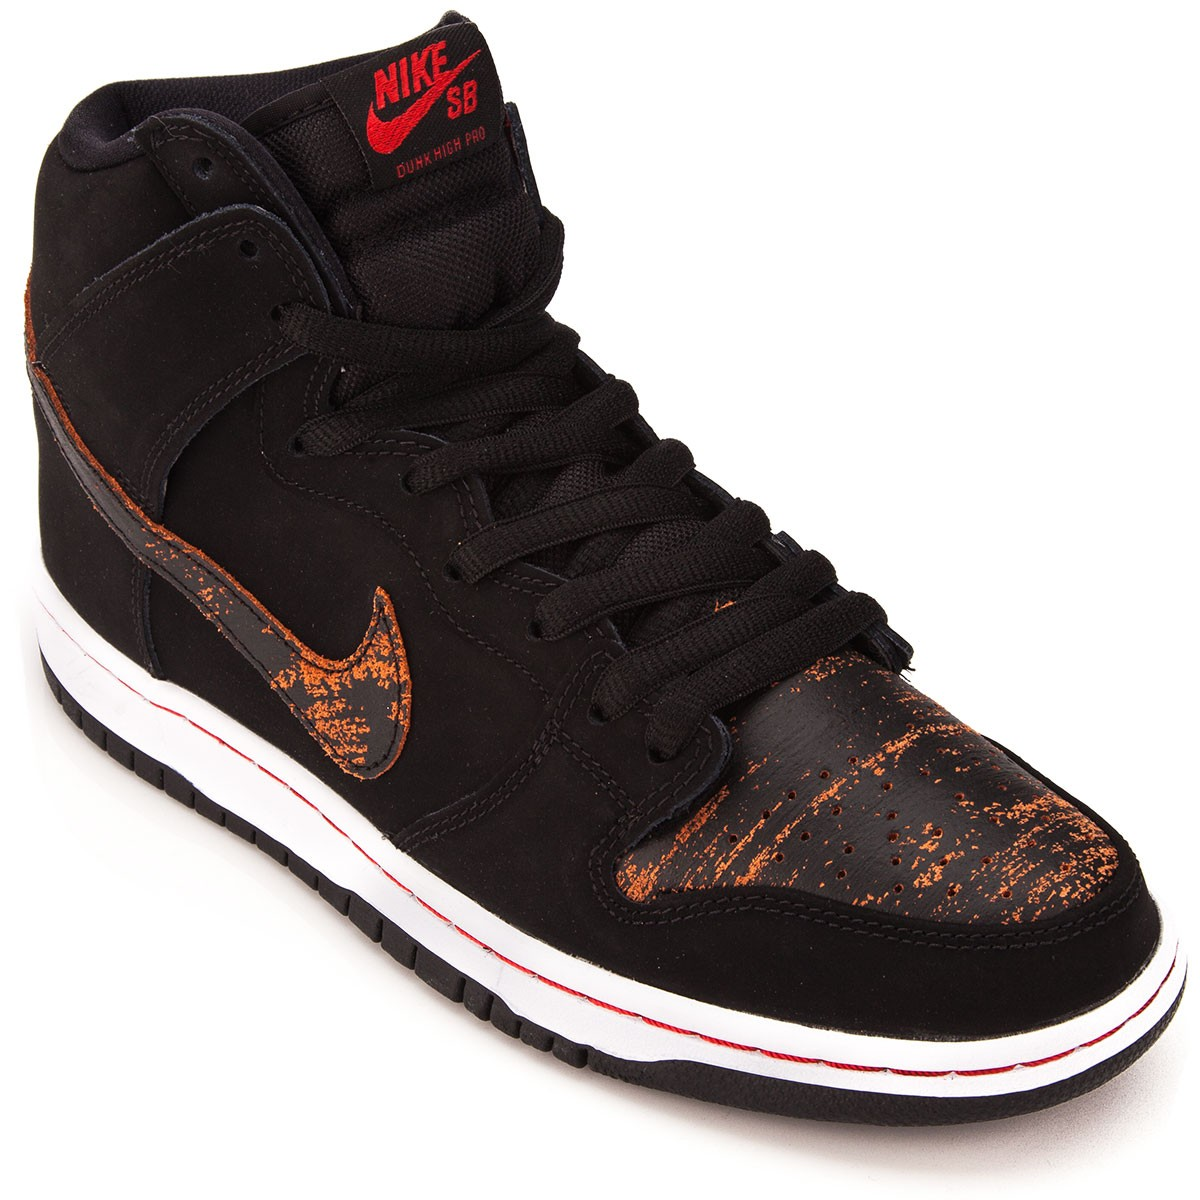 nike dunk sb shoes